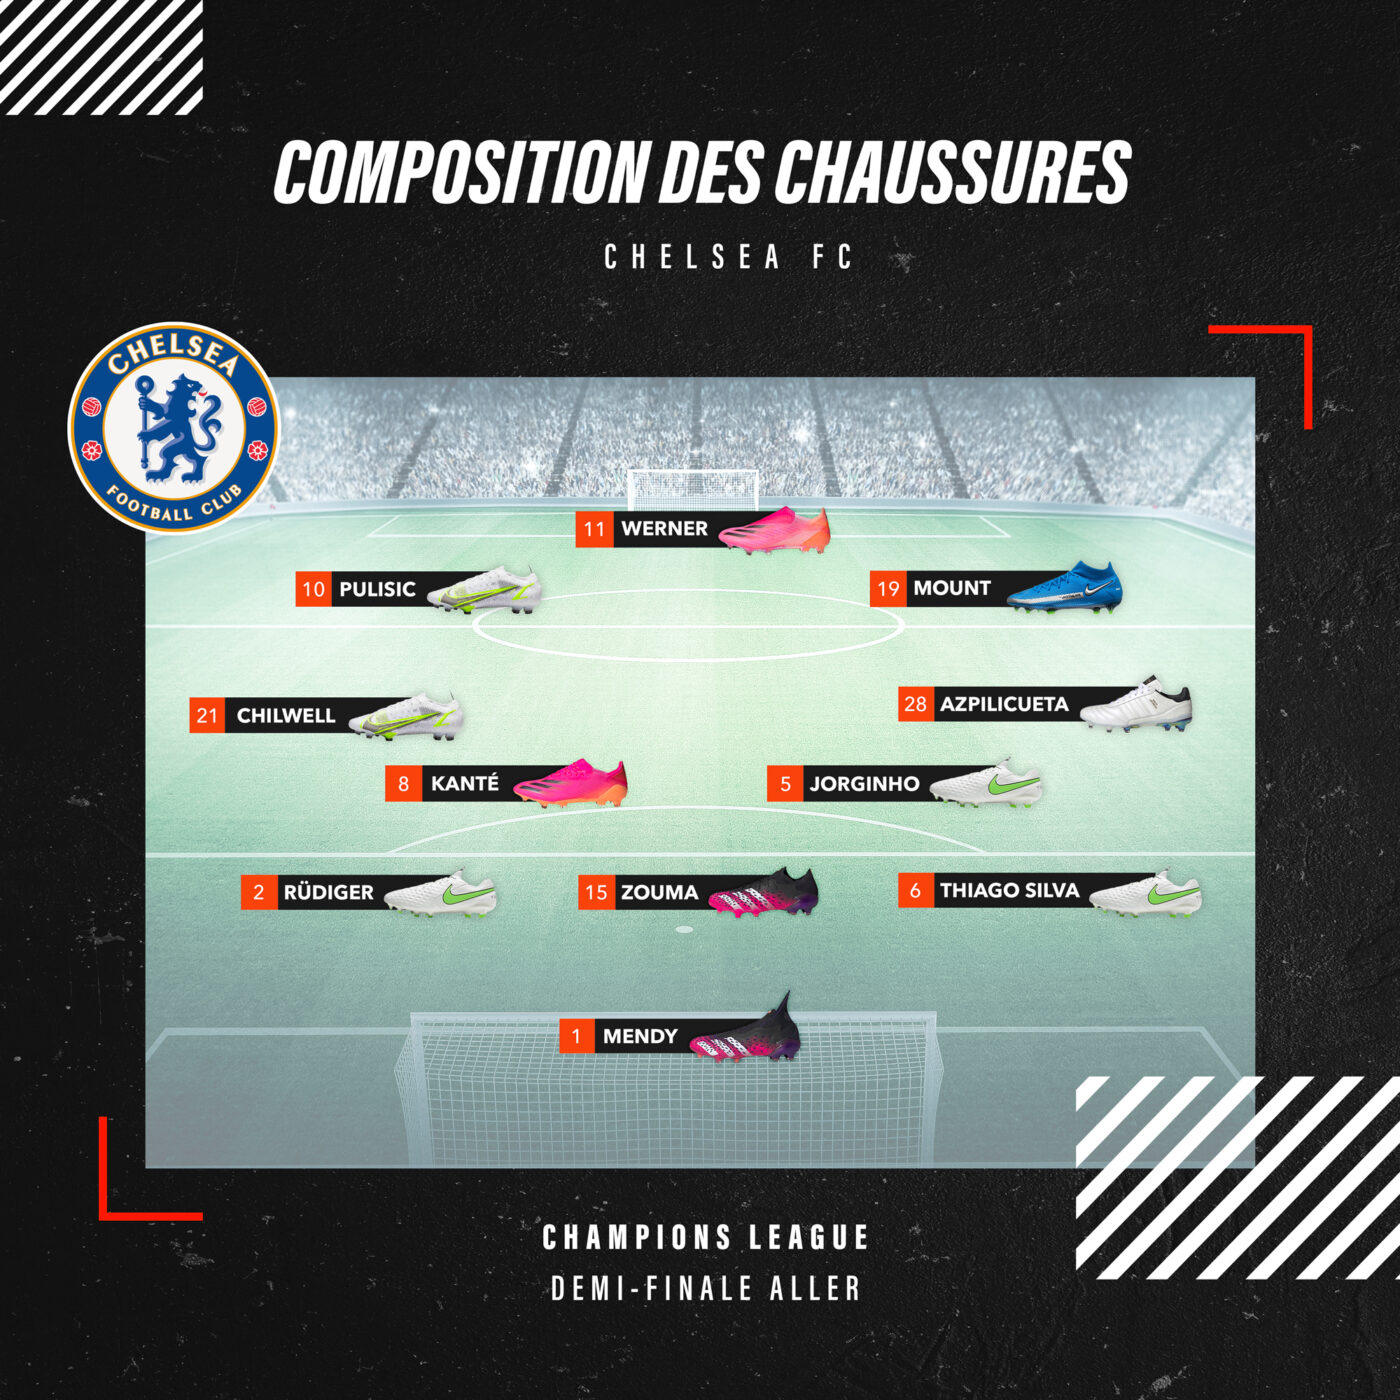 Compo Real Madrid - Chelsea Champions League